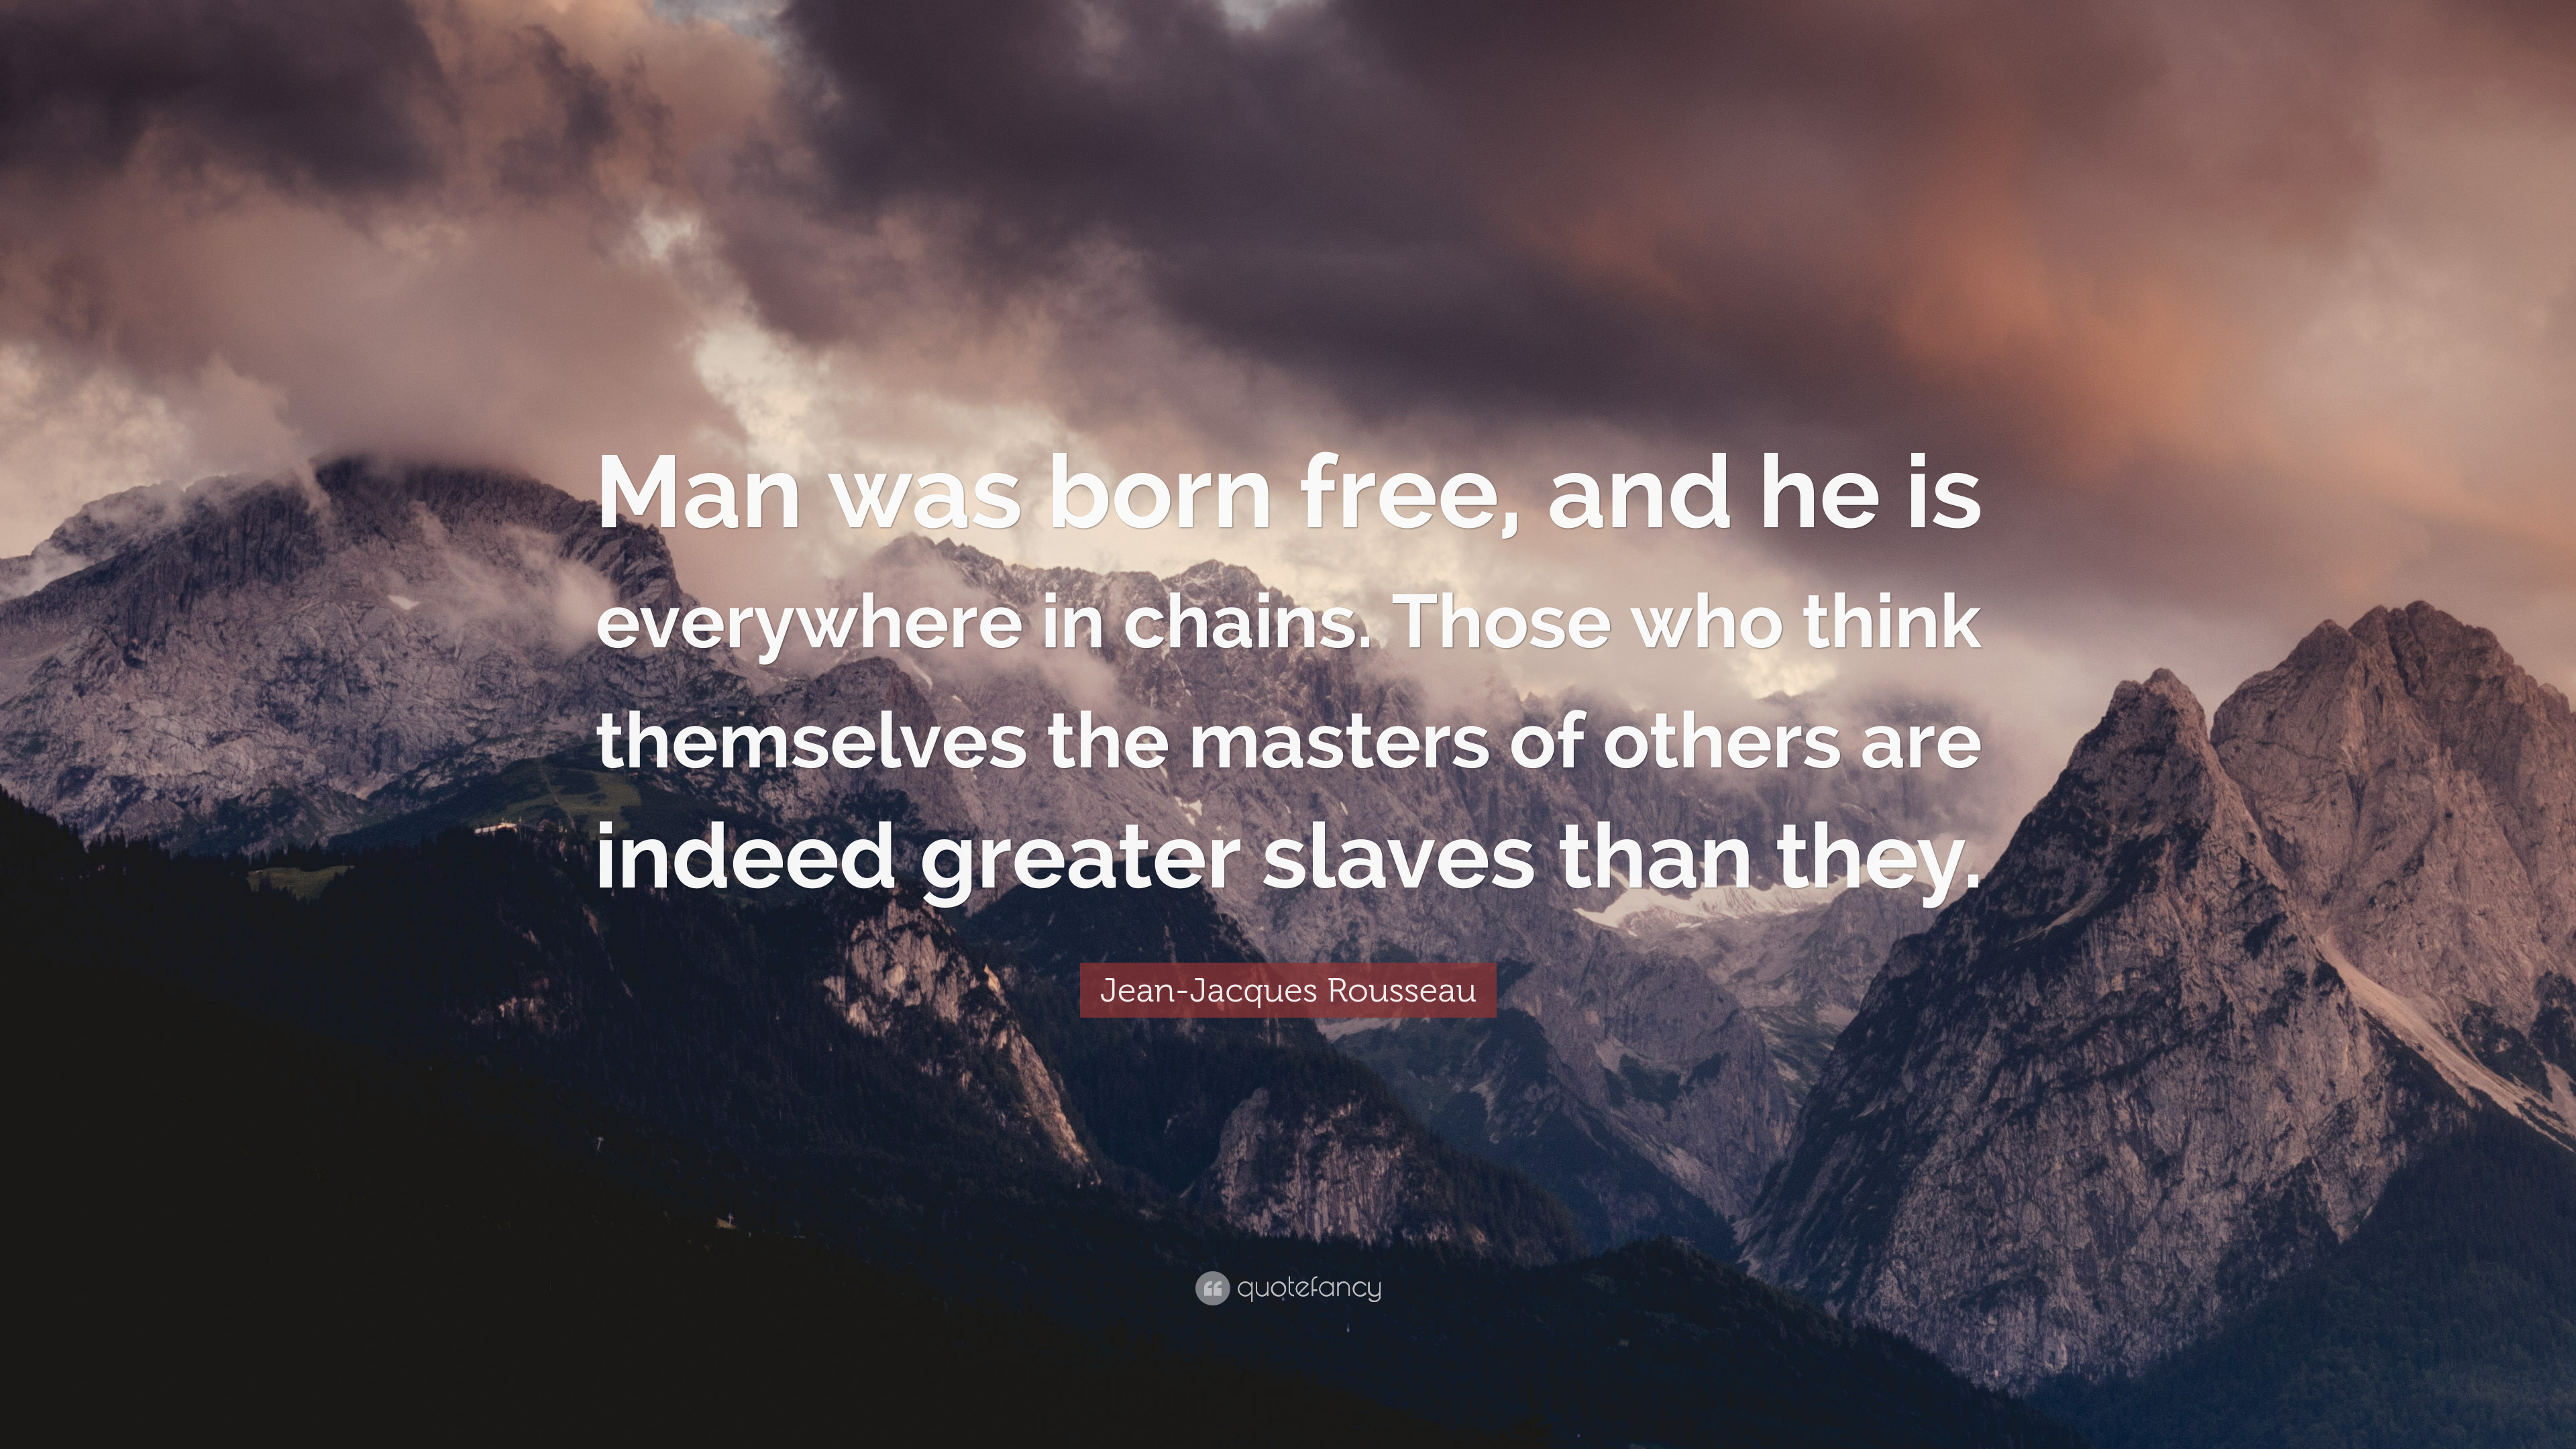 """rousseau man was born free but Free essay: unit 2 study skills – essay writing """"man is born free, but he is everywhere in chains"""" explain what rousseau means by this with reference to."""